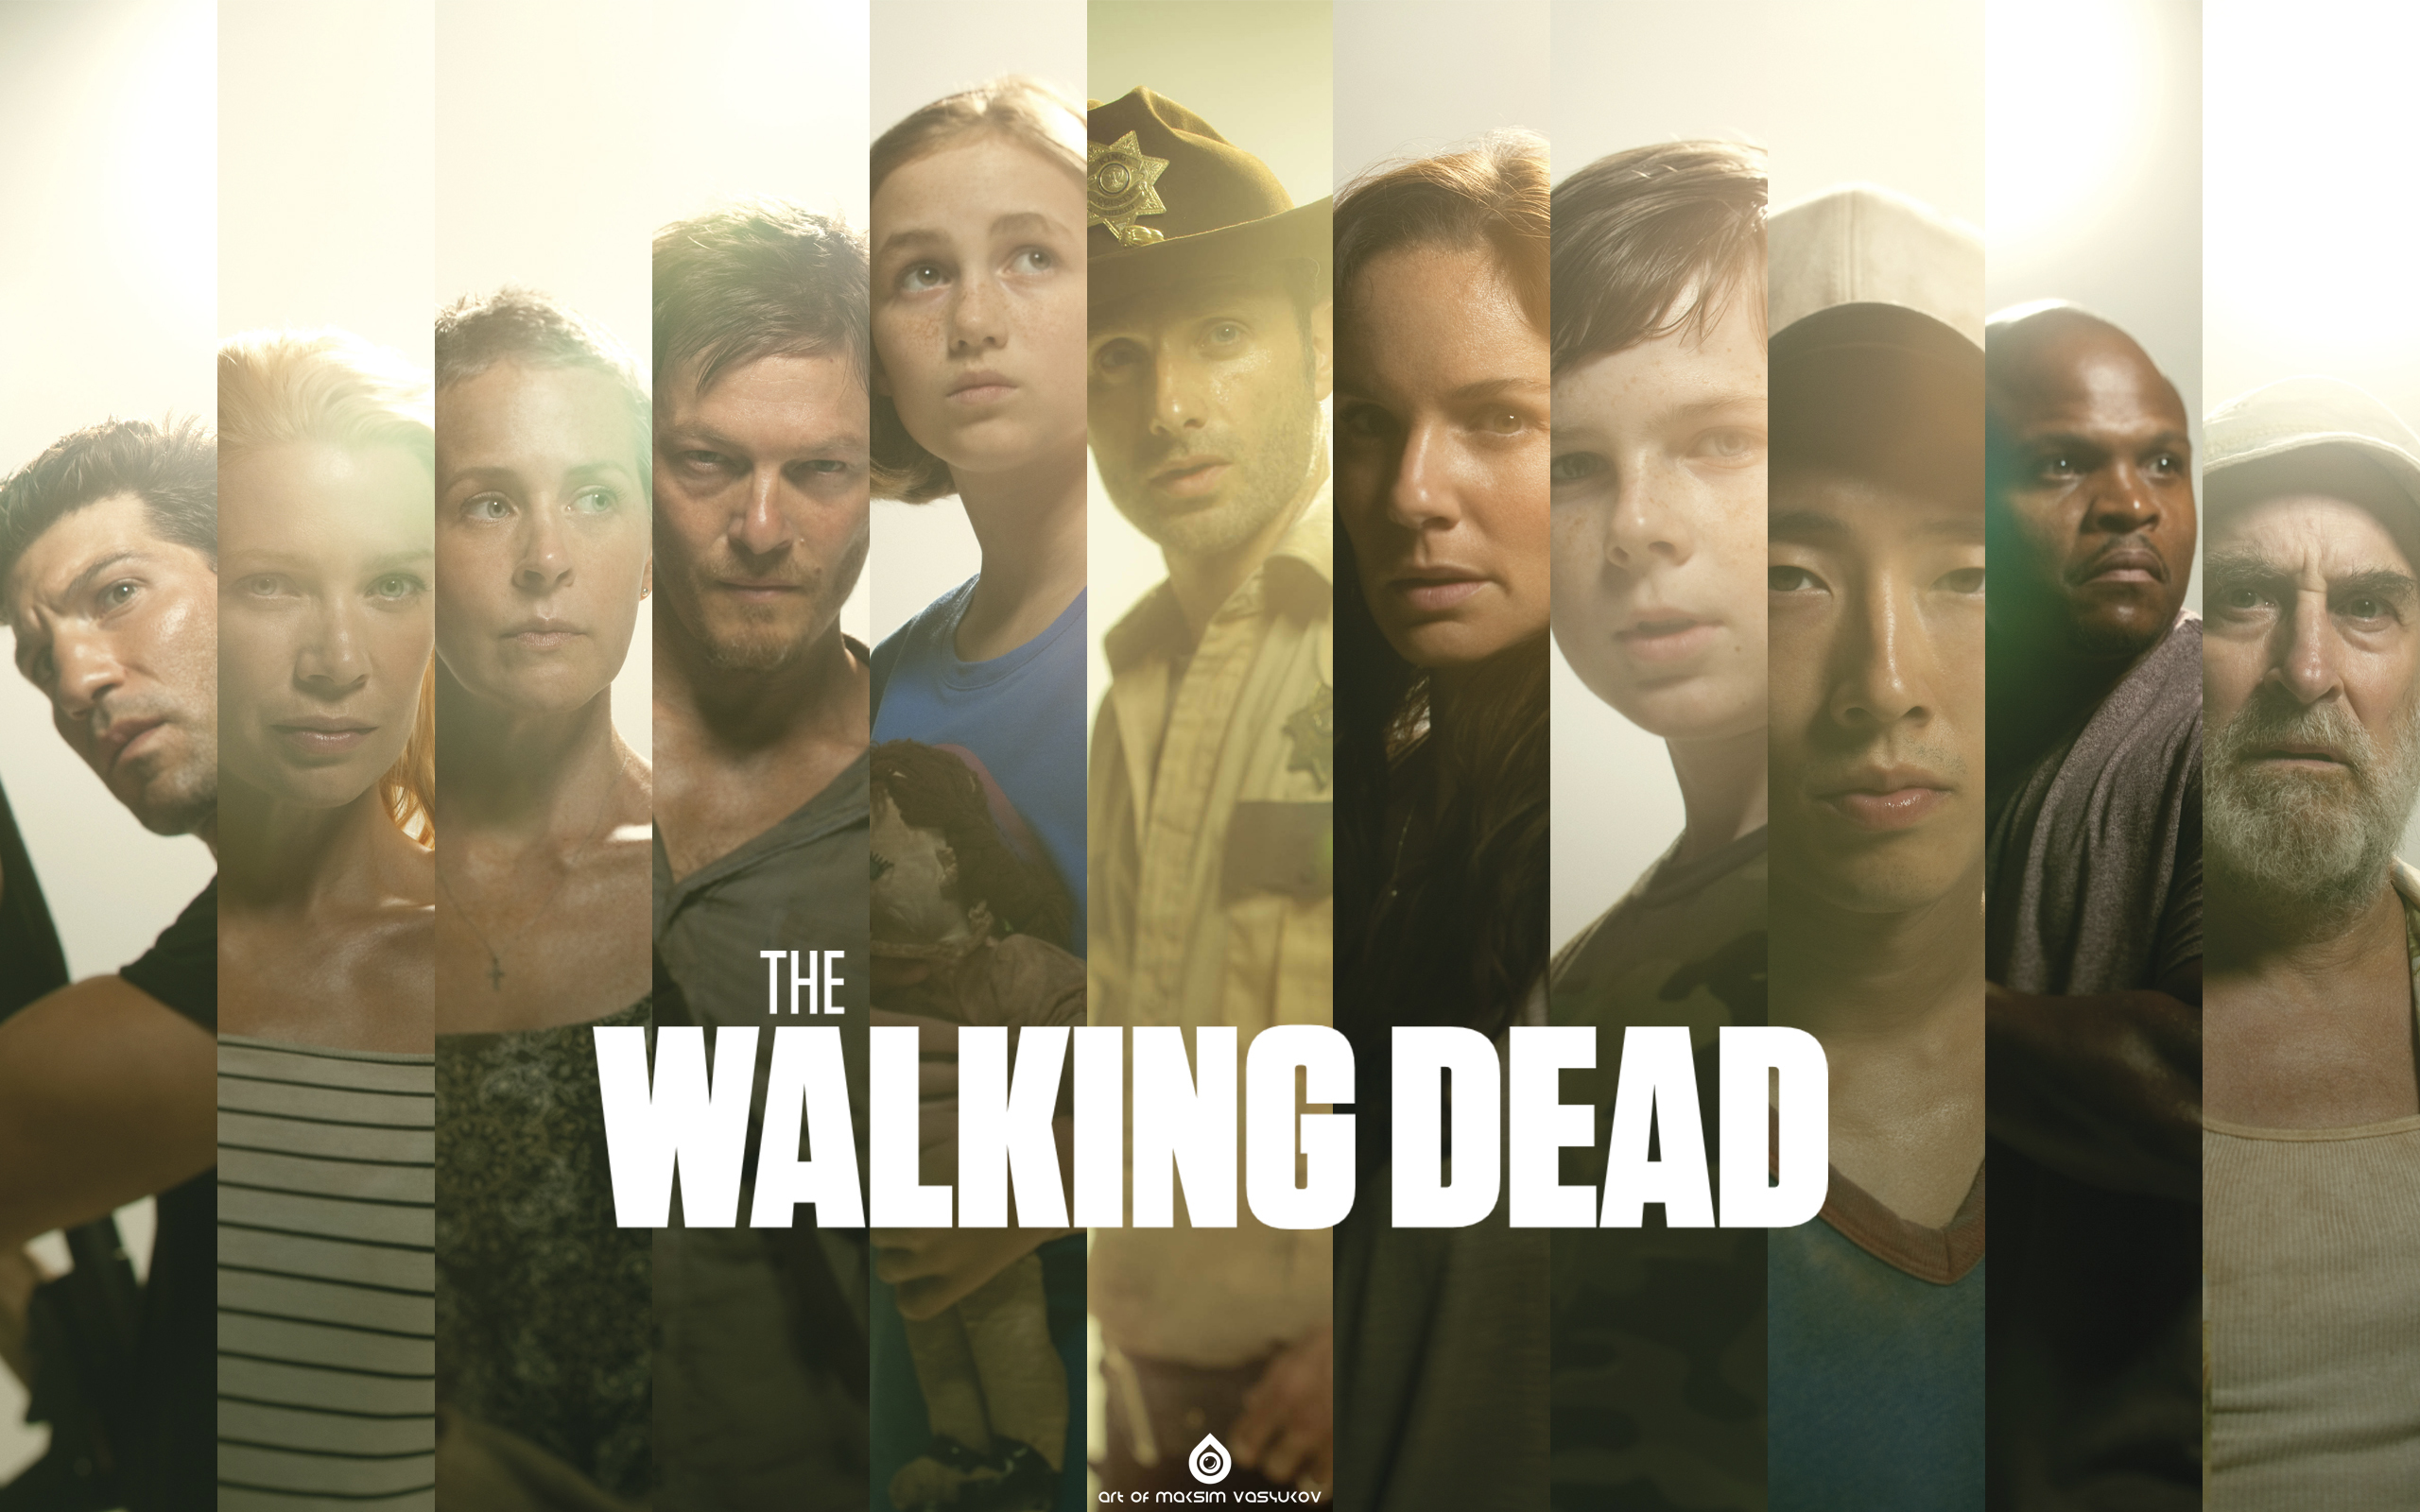 The Walking Dead 1047.37 Kb